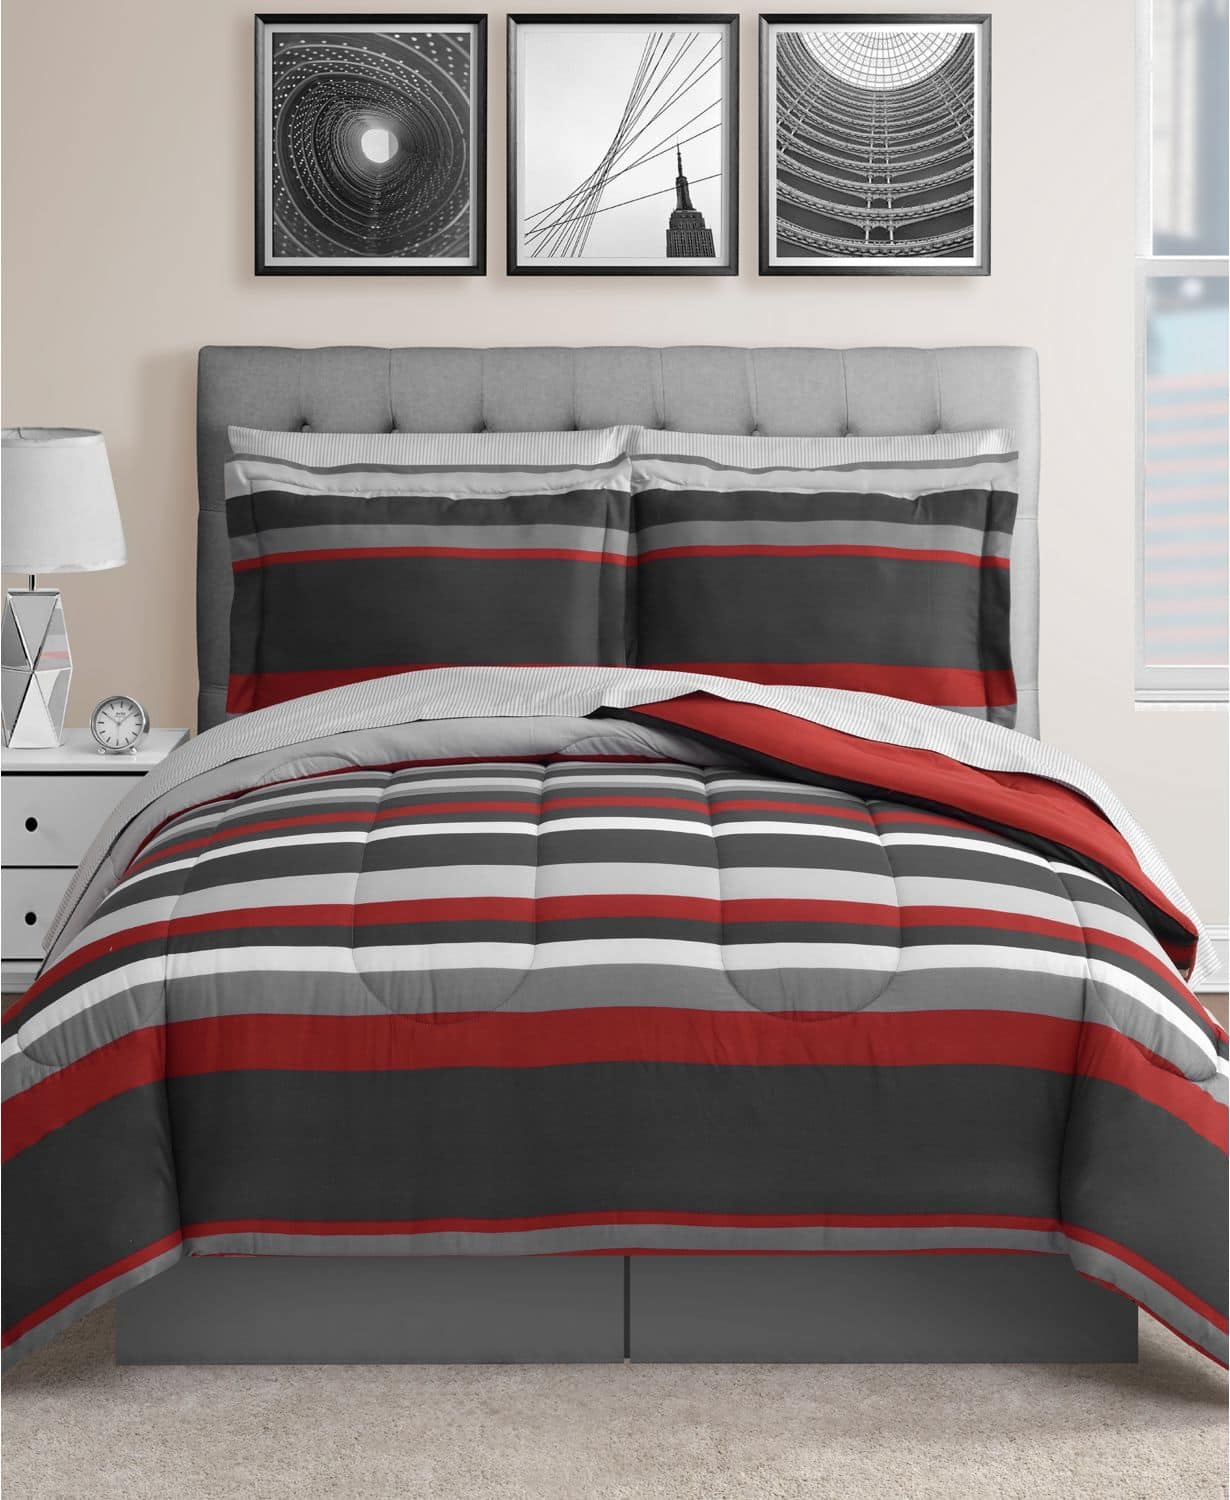 Fairfield Square Collection Austin 8-Pc. Reversible Bedding Sets (Full, Queen, King or California King) for $29.99 + FS